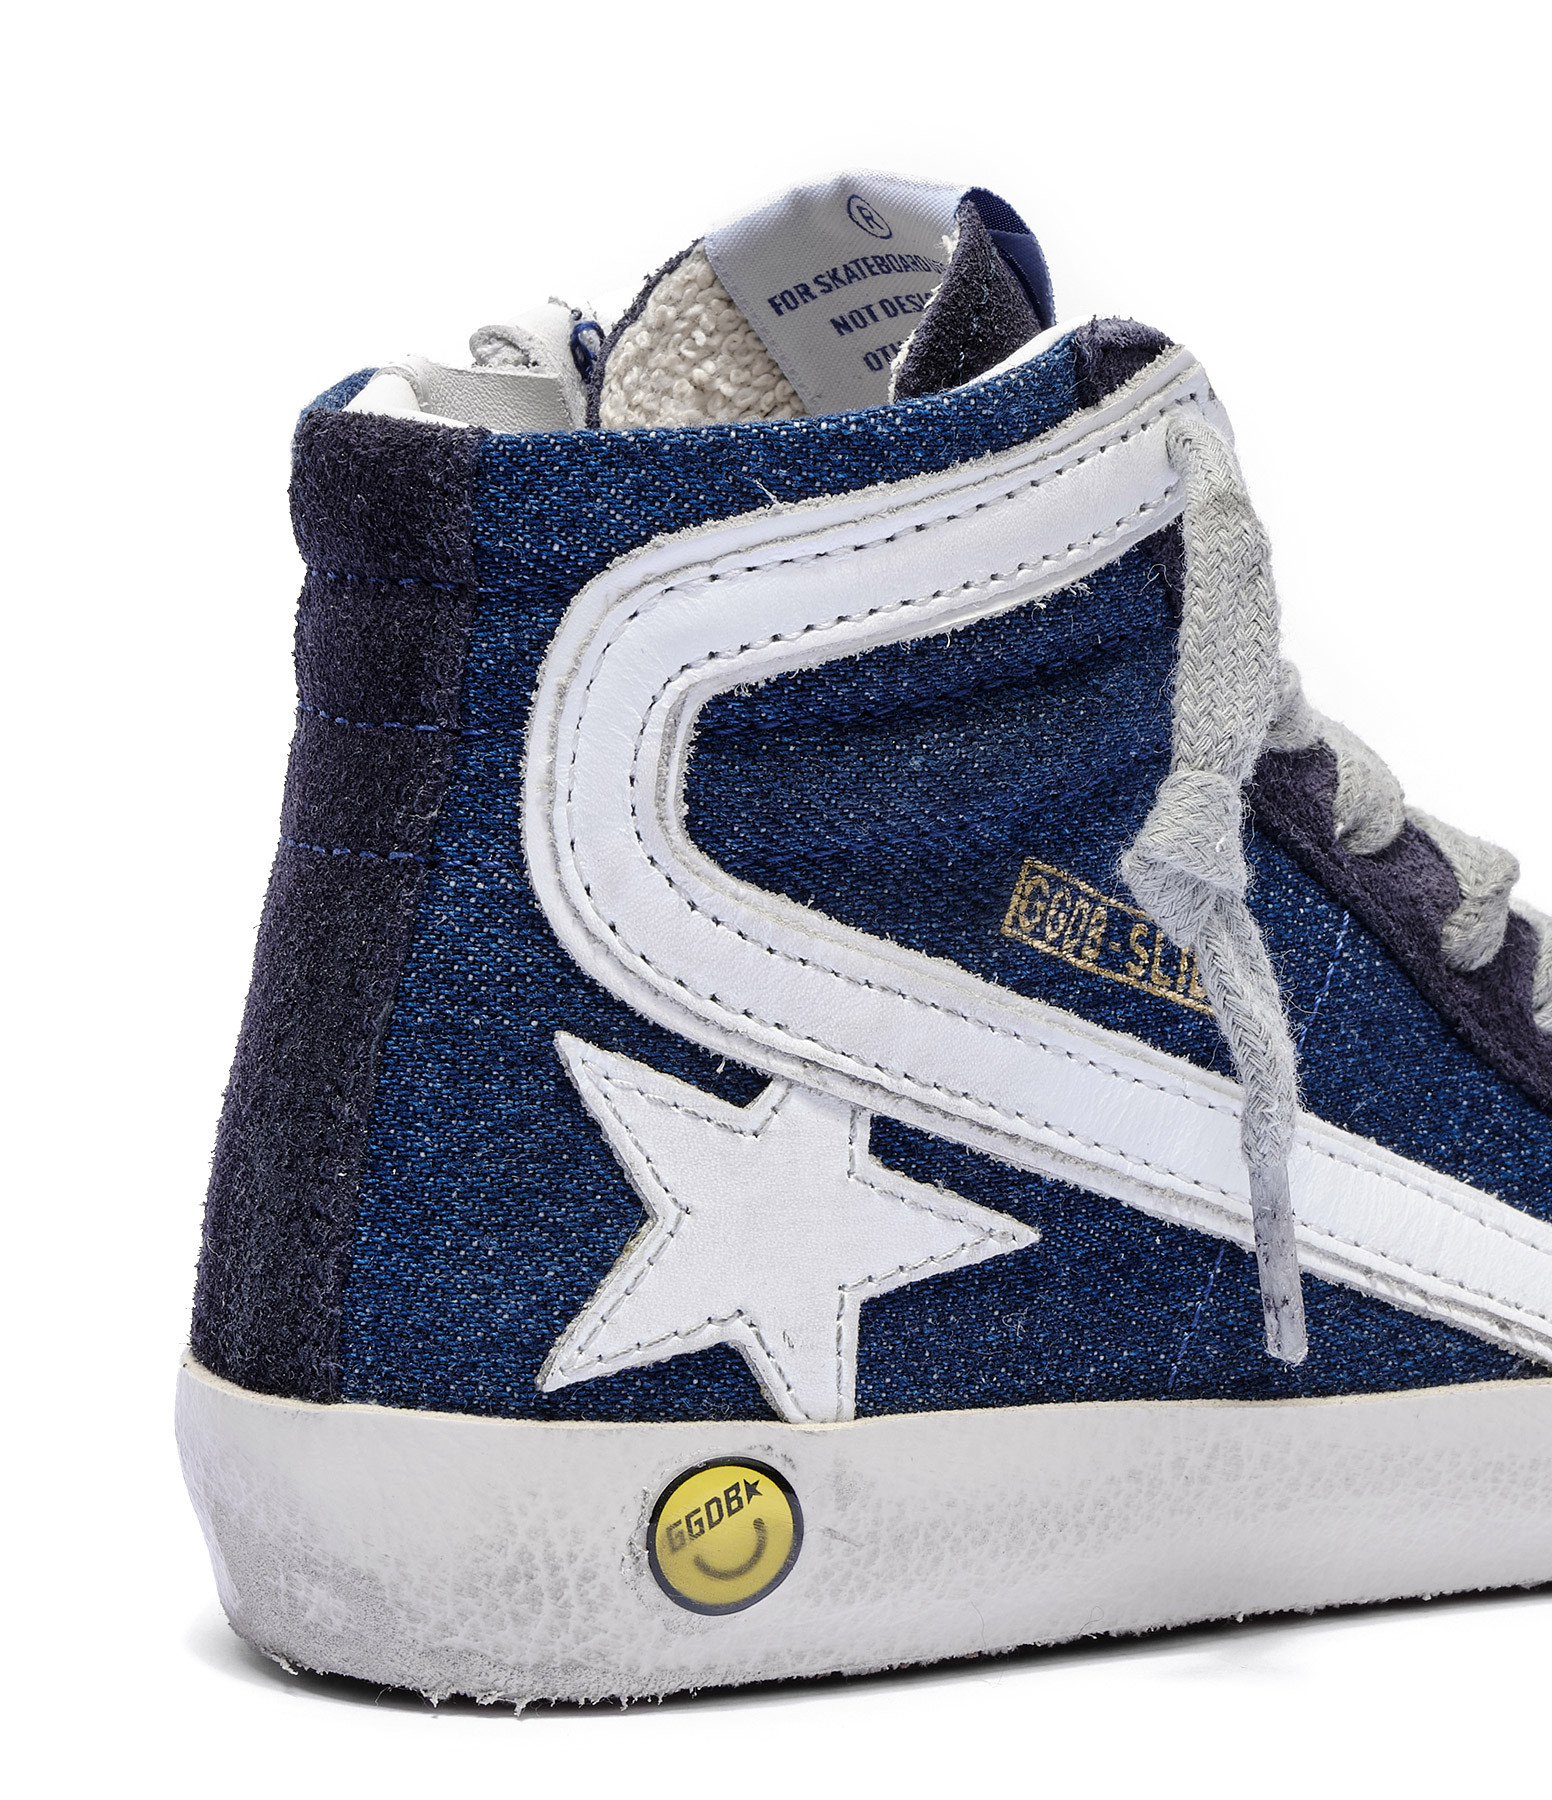 GOLDEN GOOSE - Baskets Enfant Slide Cuir Bleu Denim